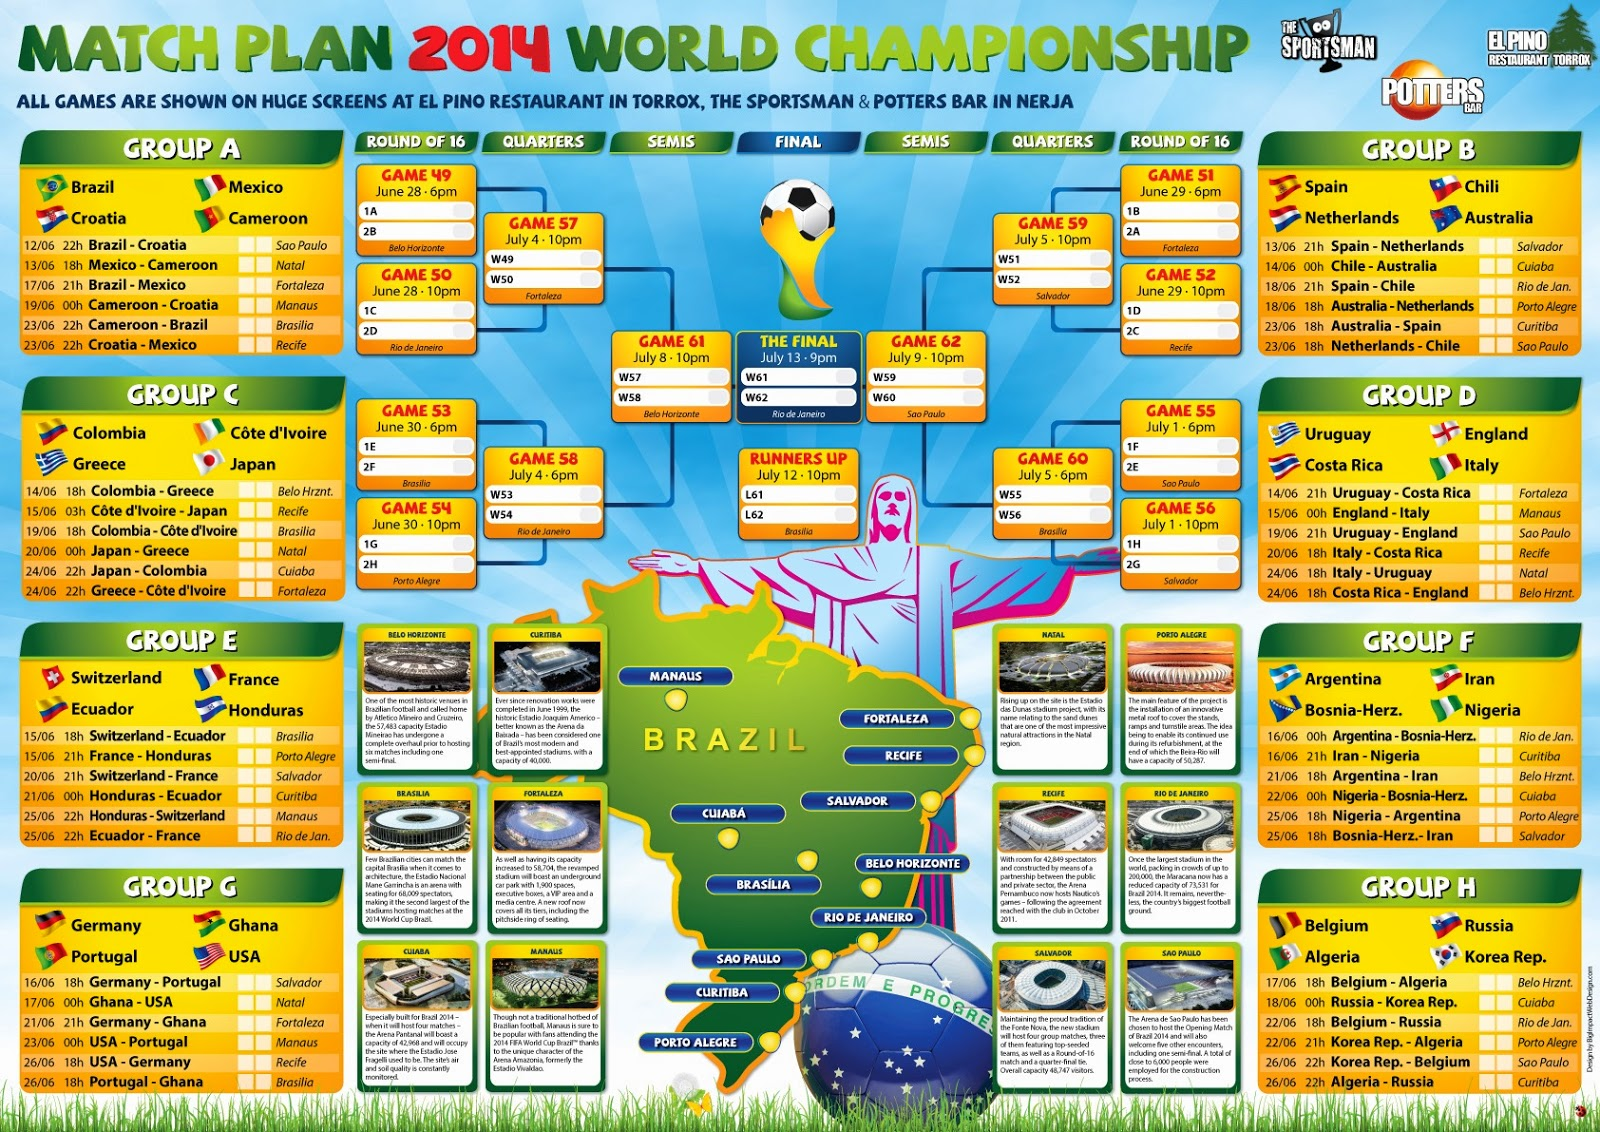 Match plan 2014 World Championship